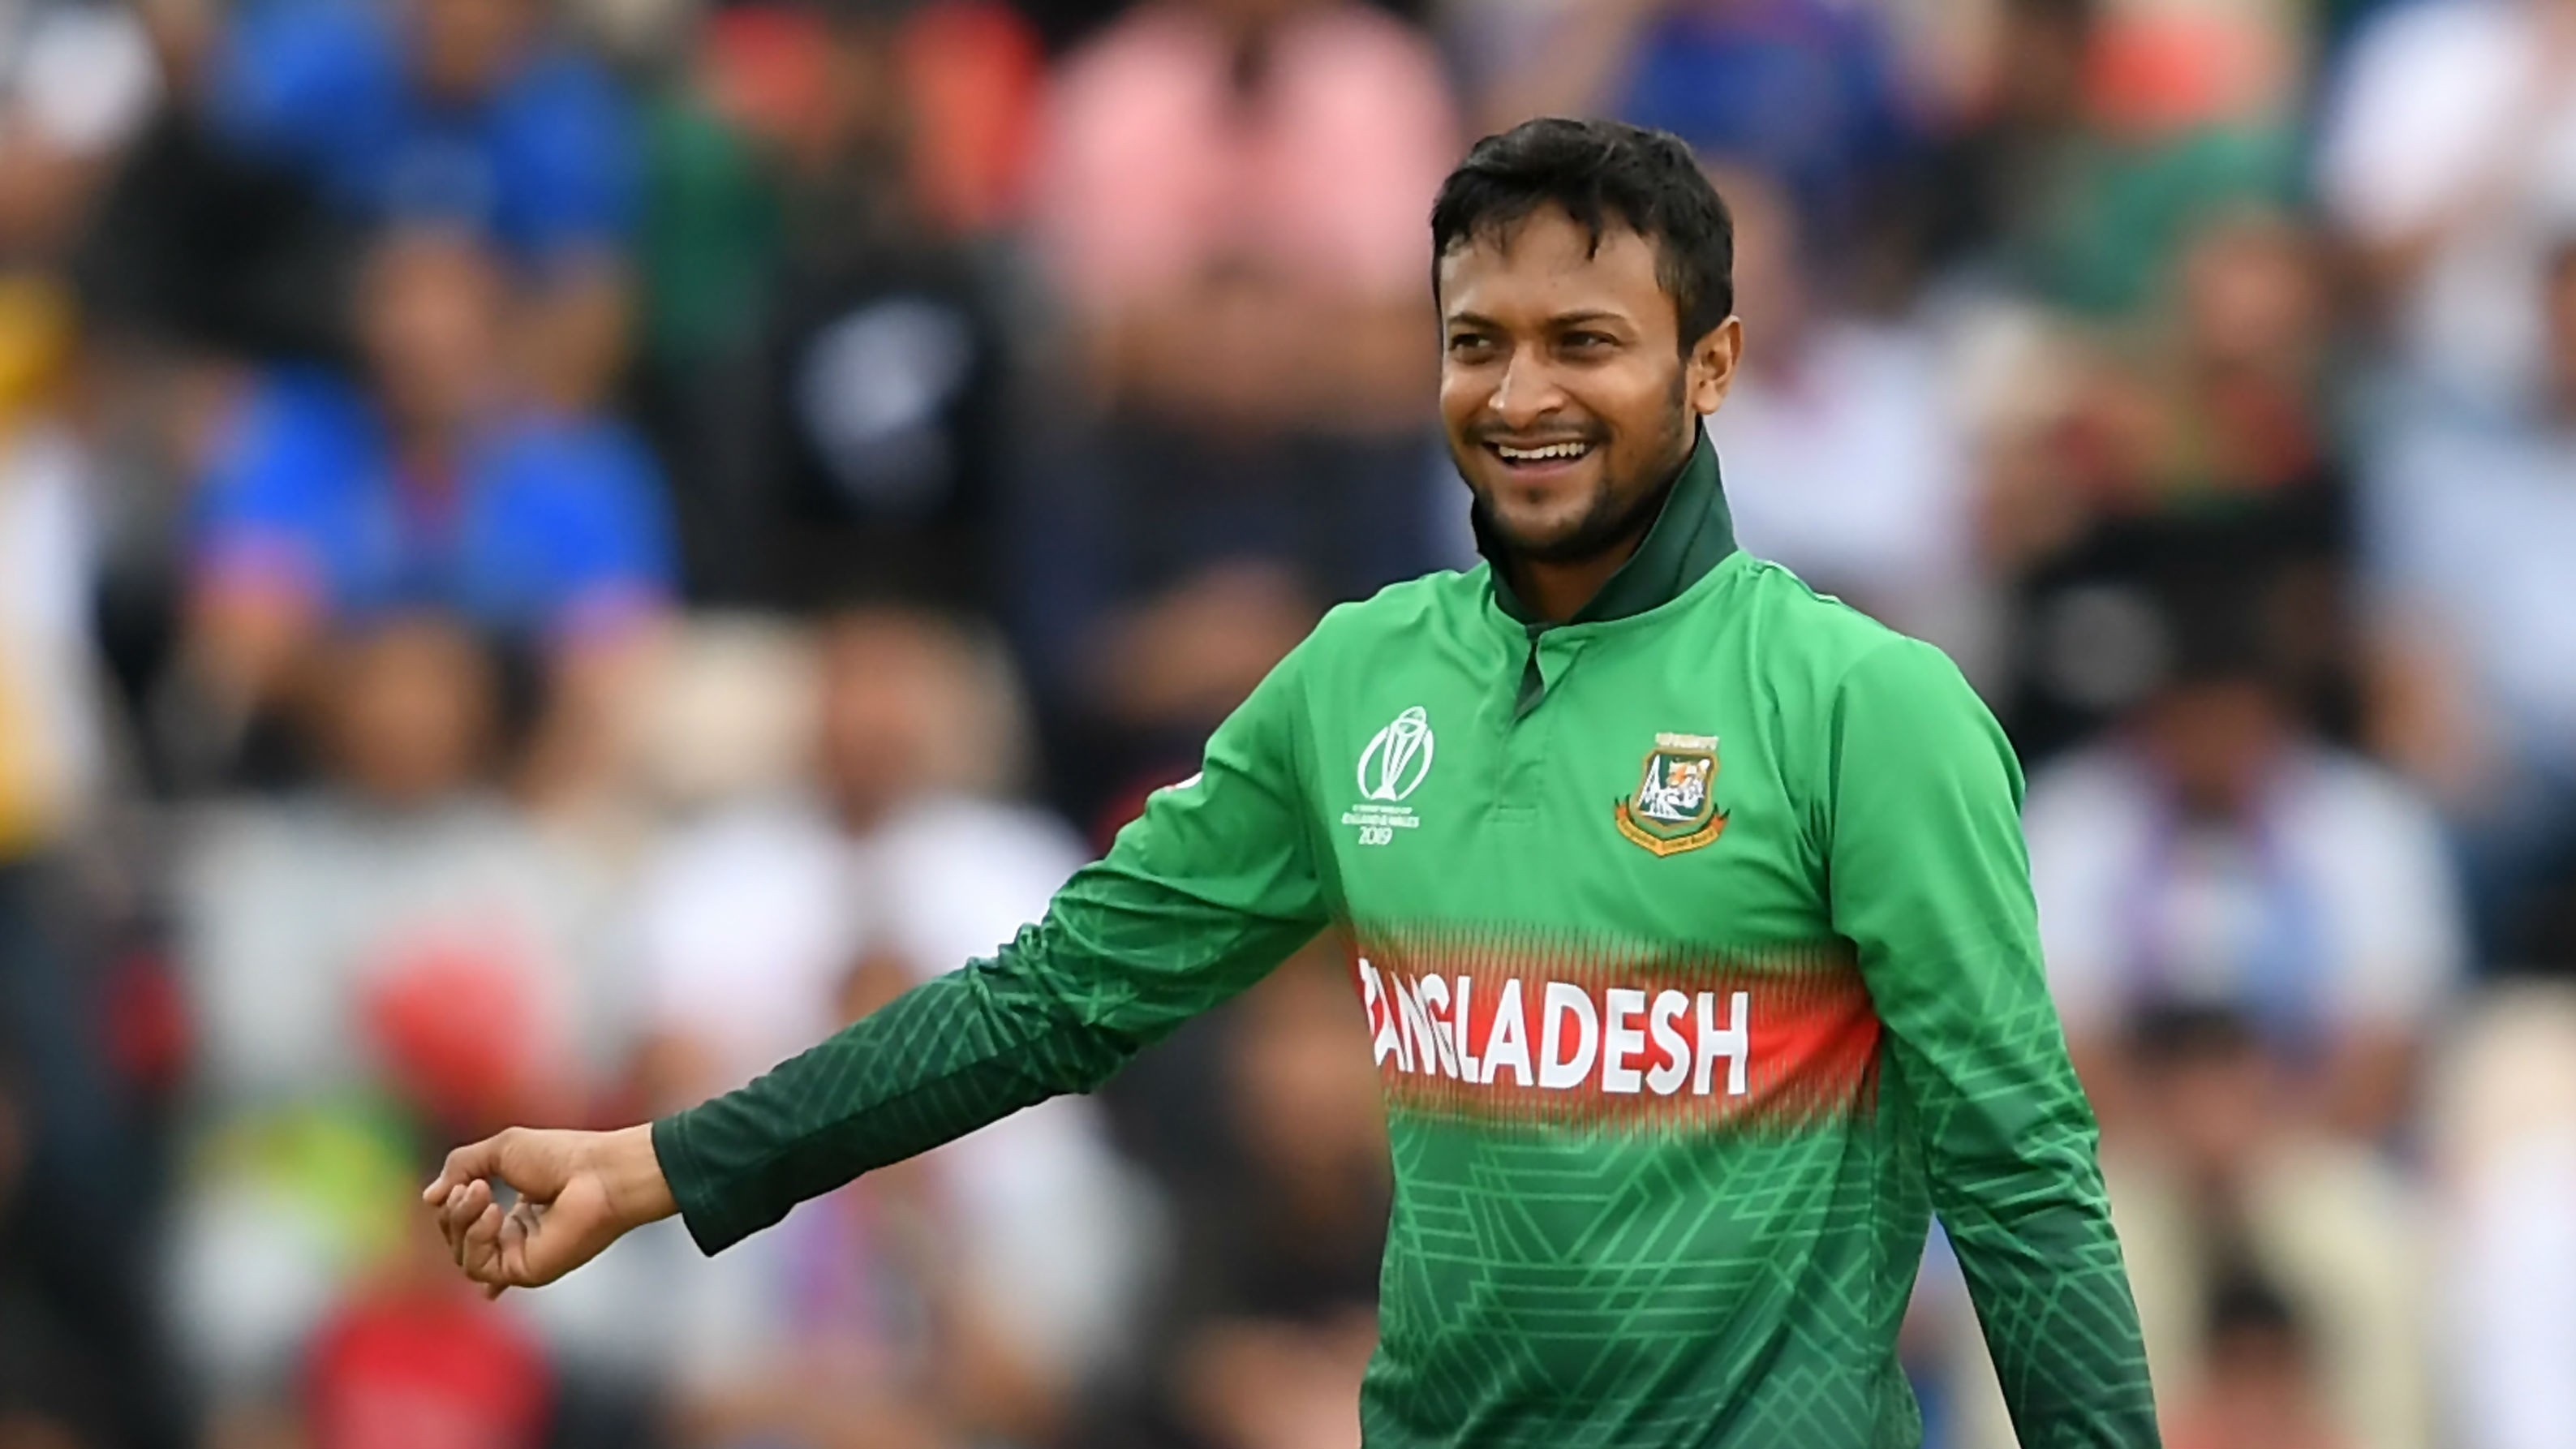 'I don't regret this one year': Shakib Al Hasan on serving ban for not reporting corrupt approaches